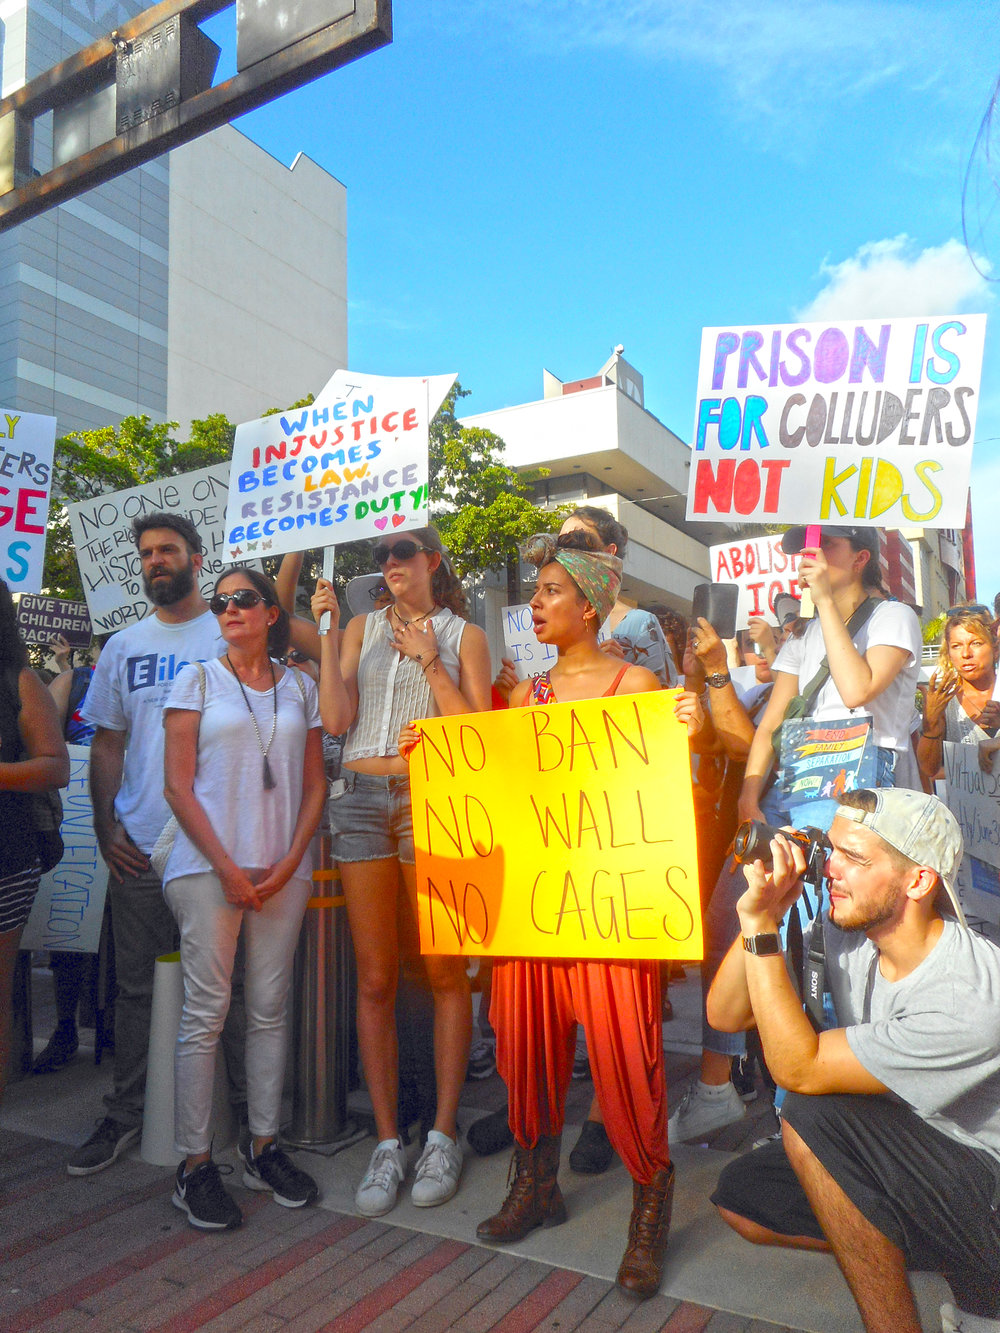 Demonstrators protest family separation and the indefinite detention of children. // Photo by Daniel di Palma